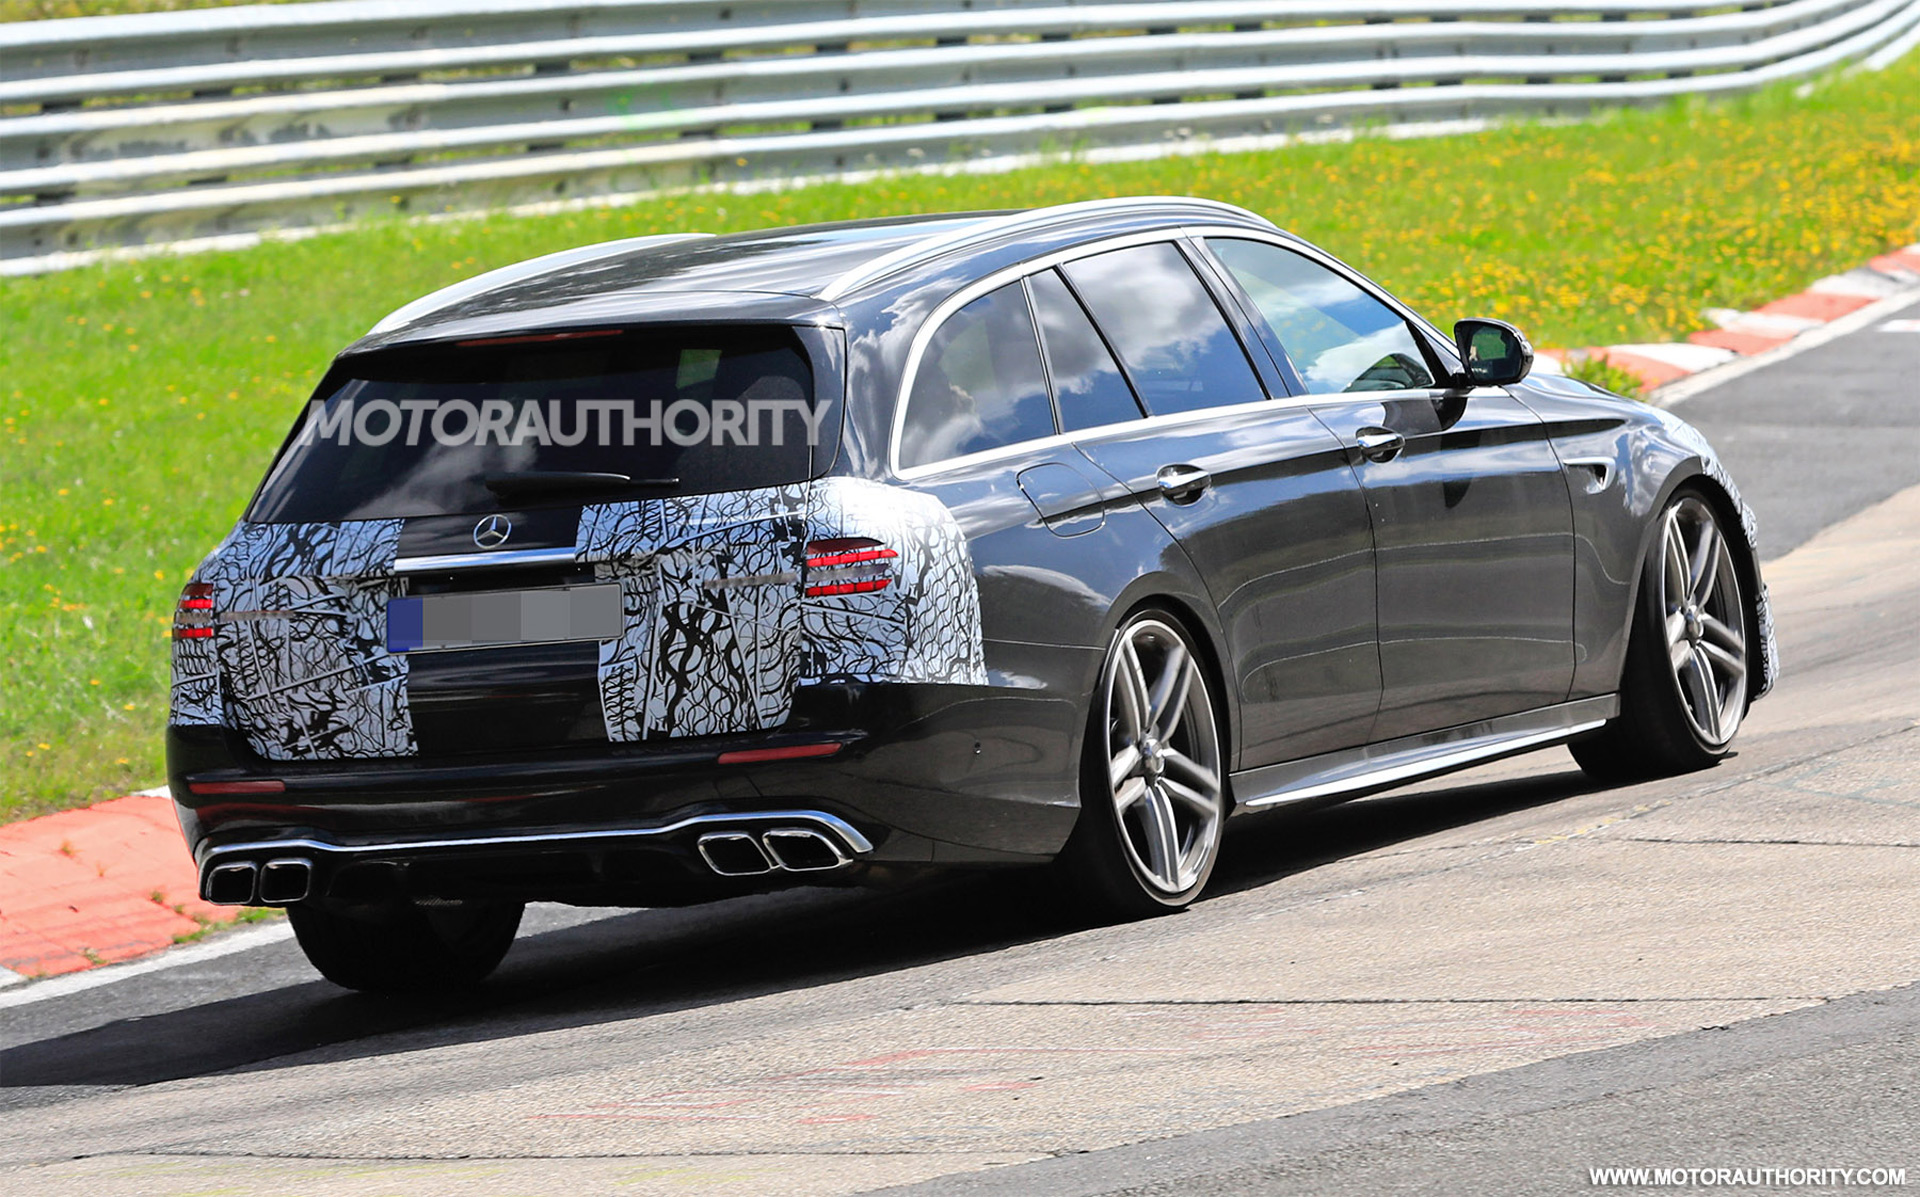 2020 - [Mercedes-Benz] Classe E restylée  - Page 2 2021-mercedes-amg-e63-wagon-facelift-spy-shots--photo-credit-s-baldauf-sb-medien_100711689_h